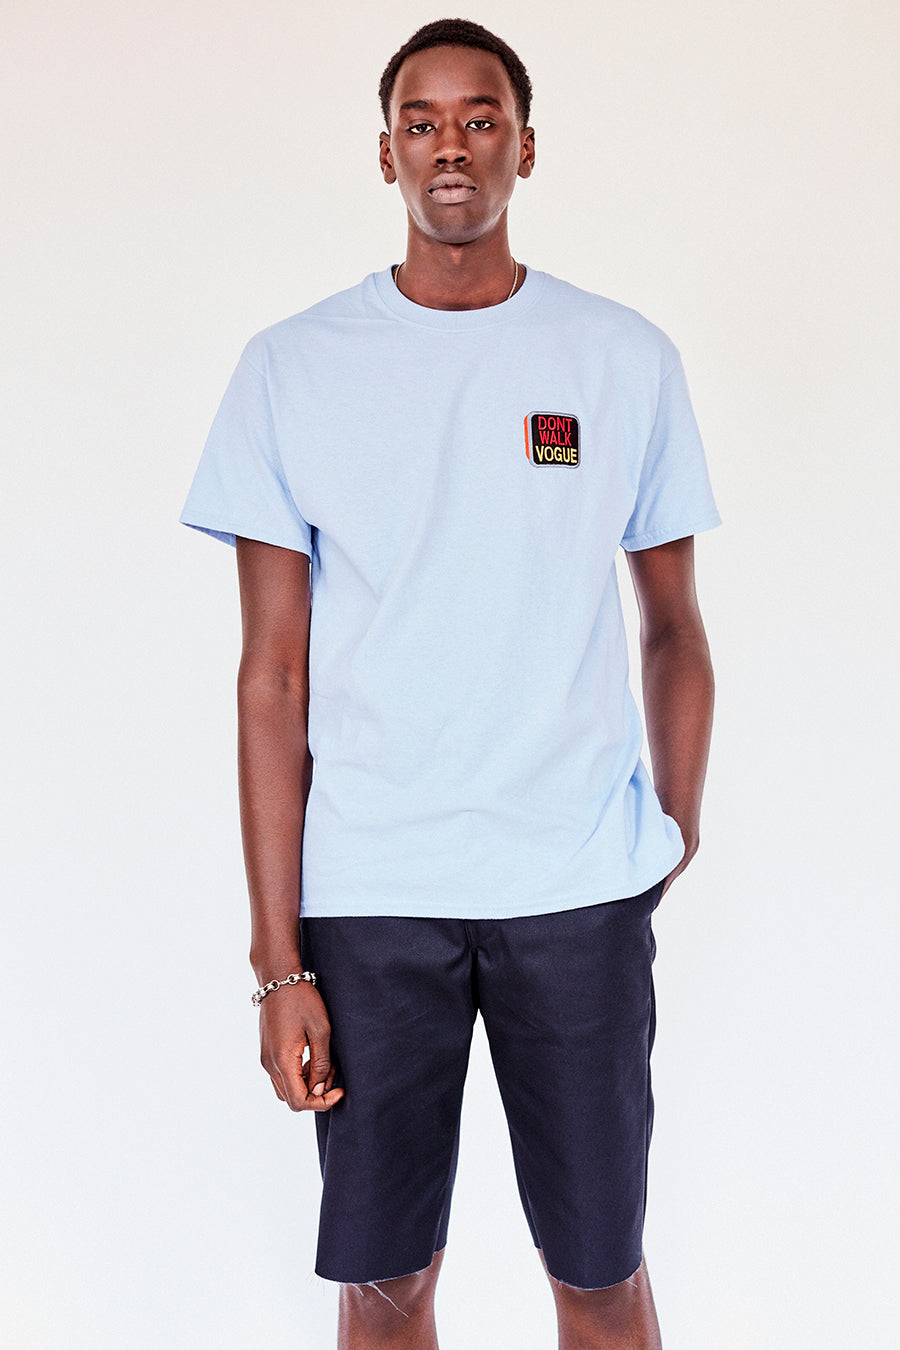 The Dont Walk Vogue Tee- Pale Blue